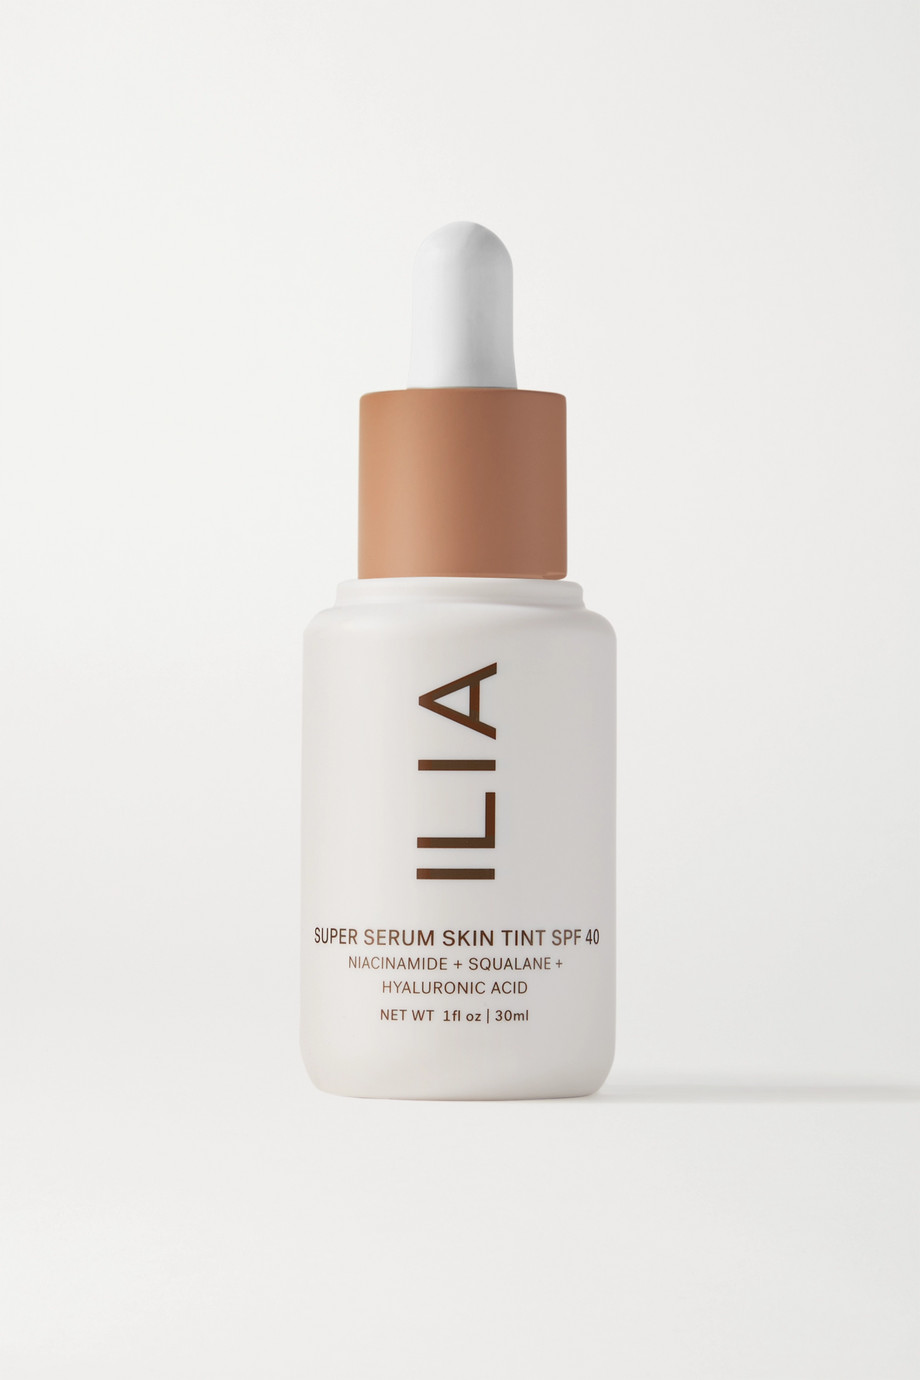 Ilia Super Serum Skin Tint SPF 40 - Matira ST11, 30ml